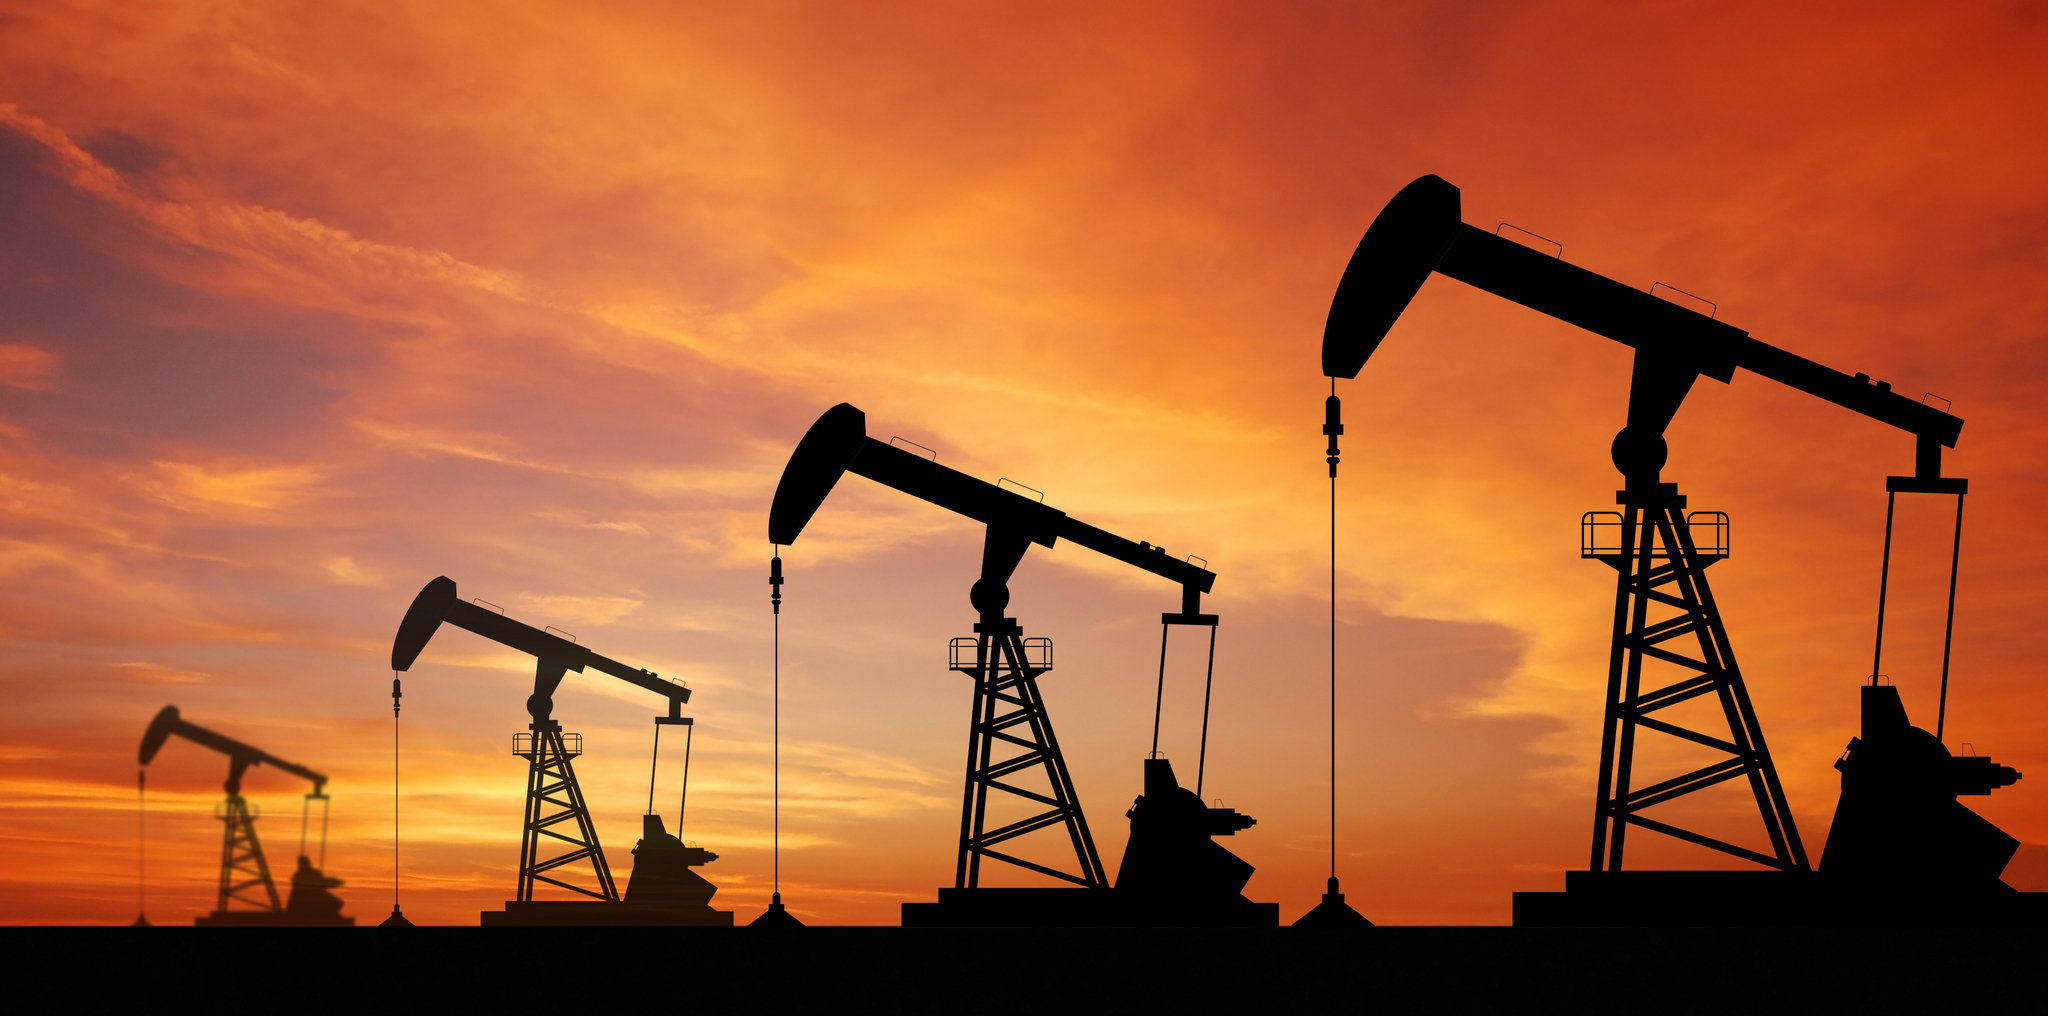 oil  oil producers exxon mobile bsic bocconi students investment club